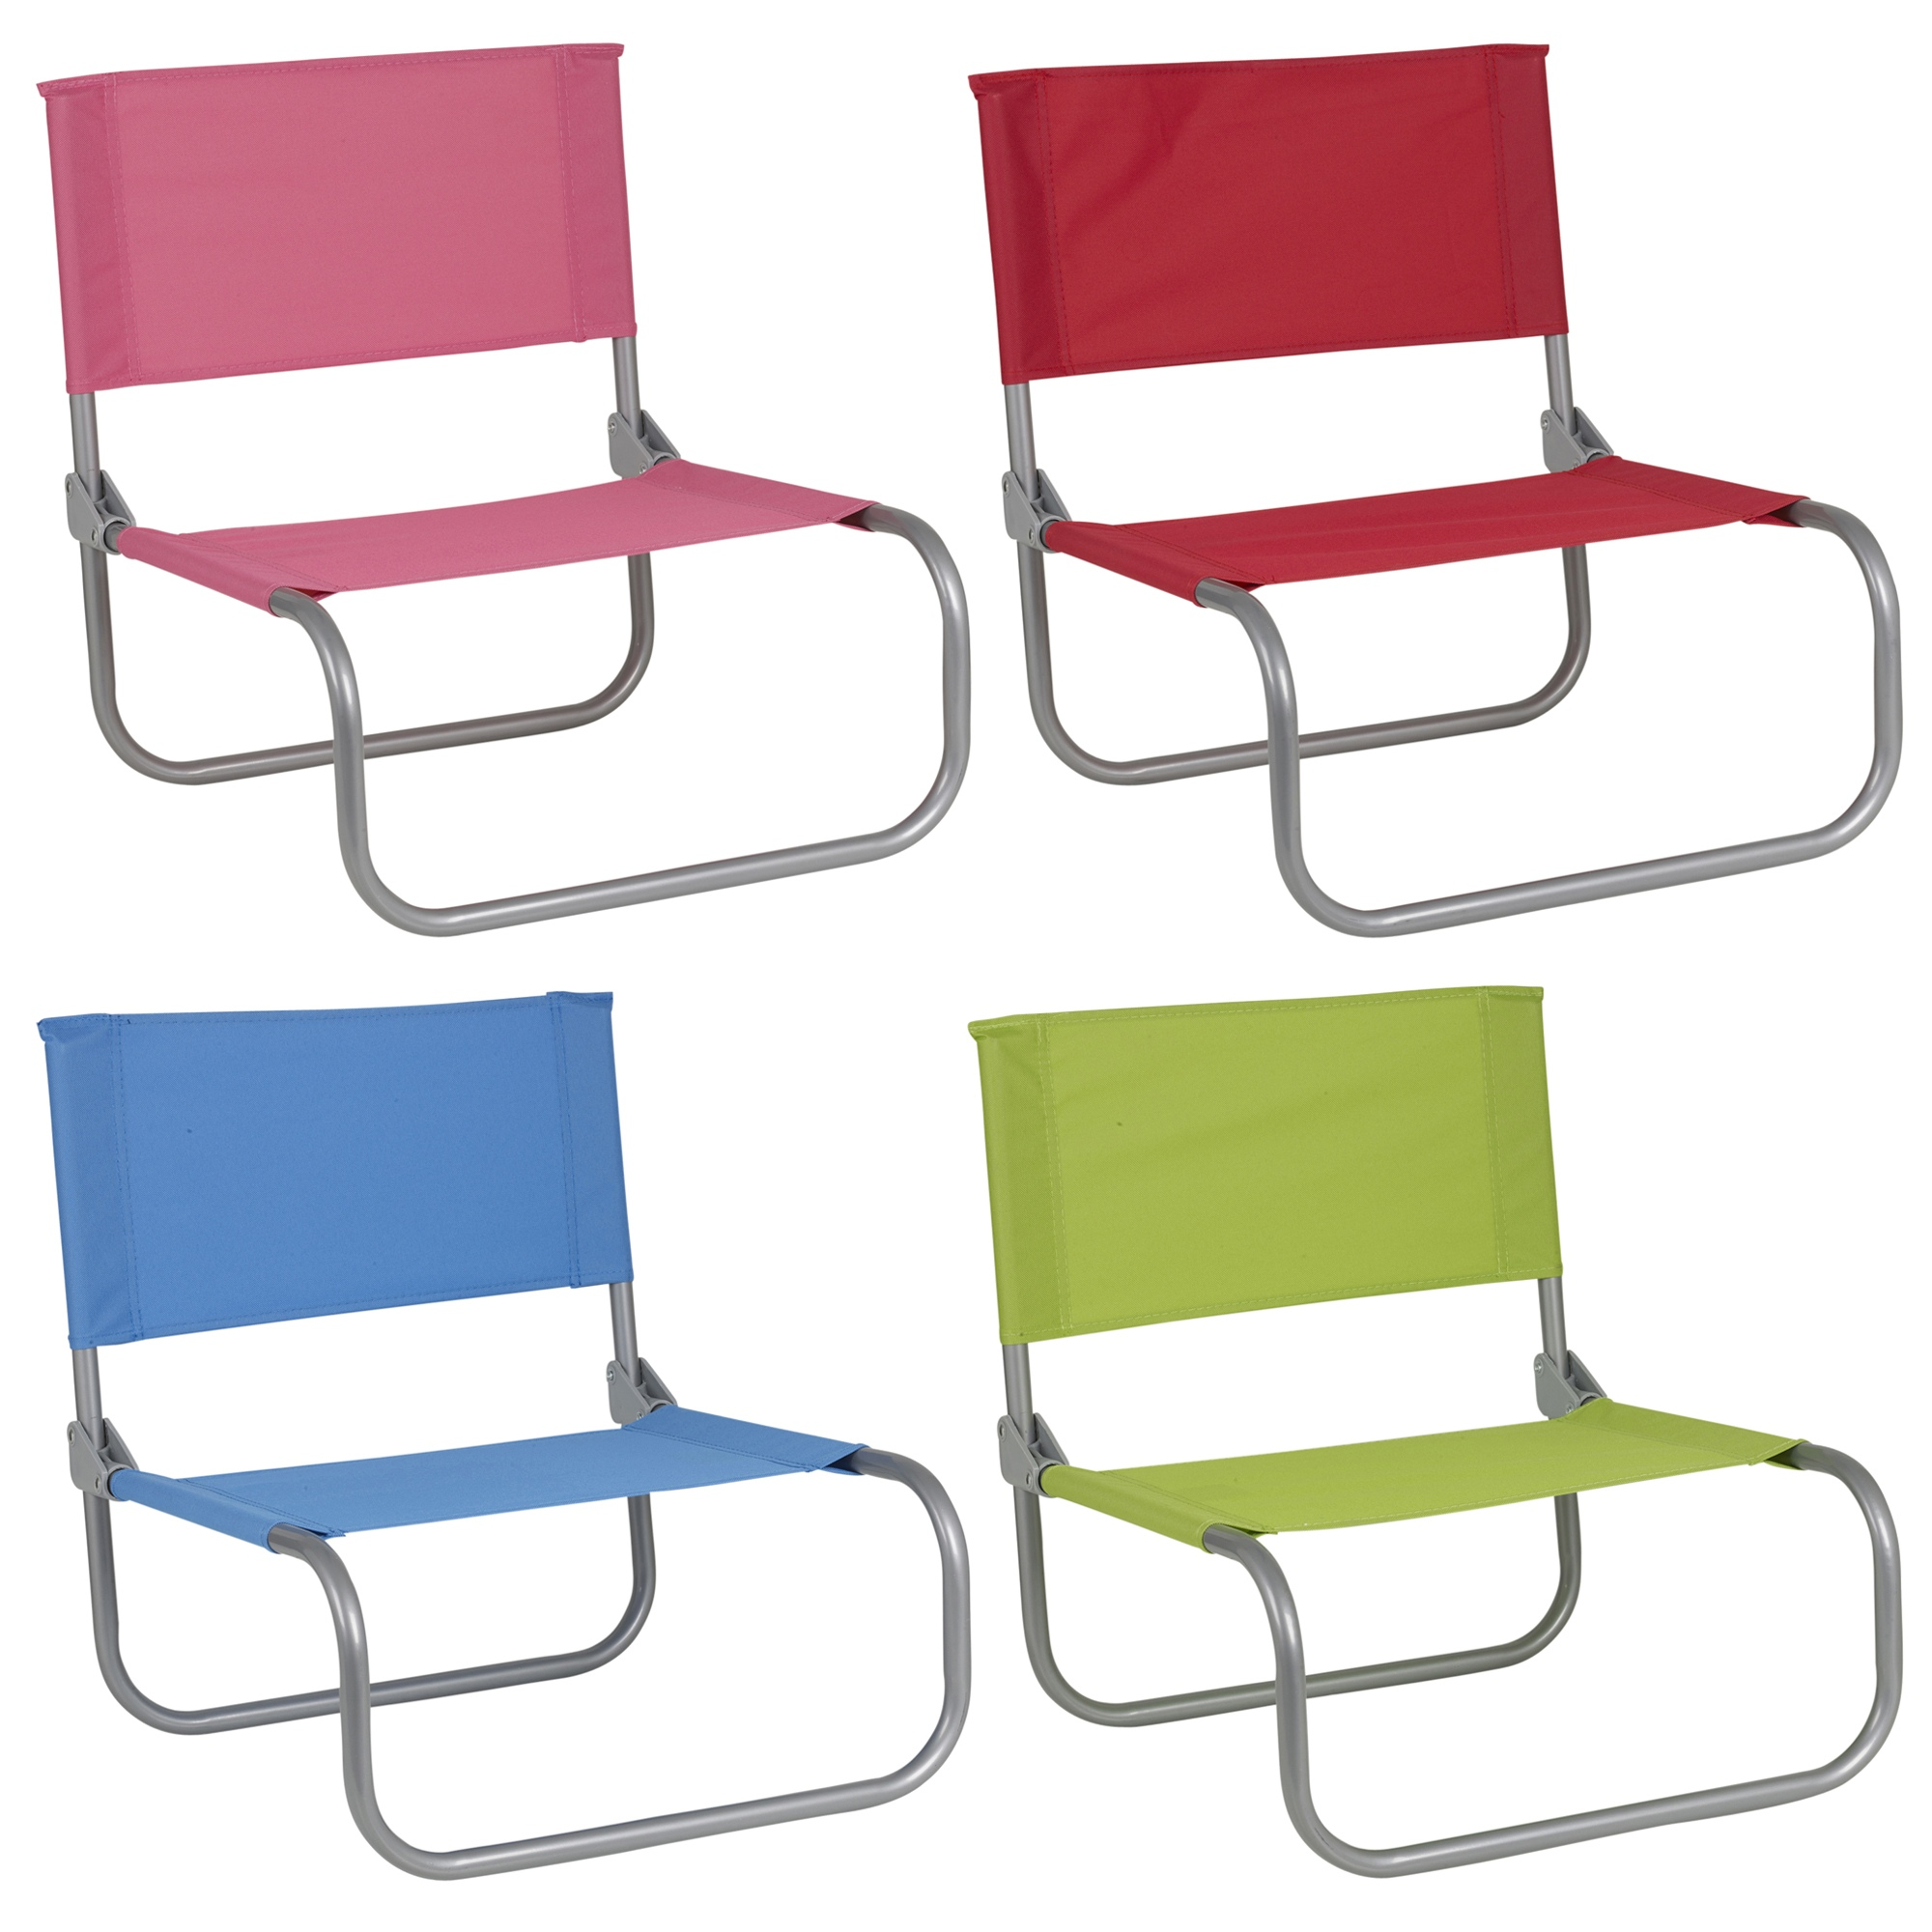 Beach Folding Chairs Details About Portable Folding Low Beach Chairs Coloured Garden Picnic Deck Pool Chair Outdoor